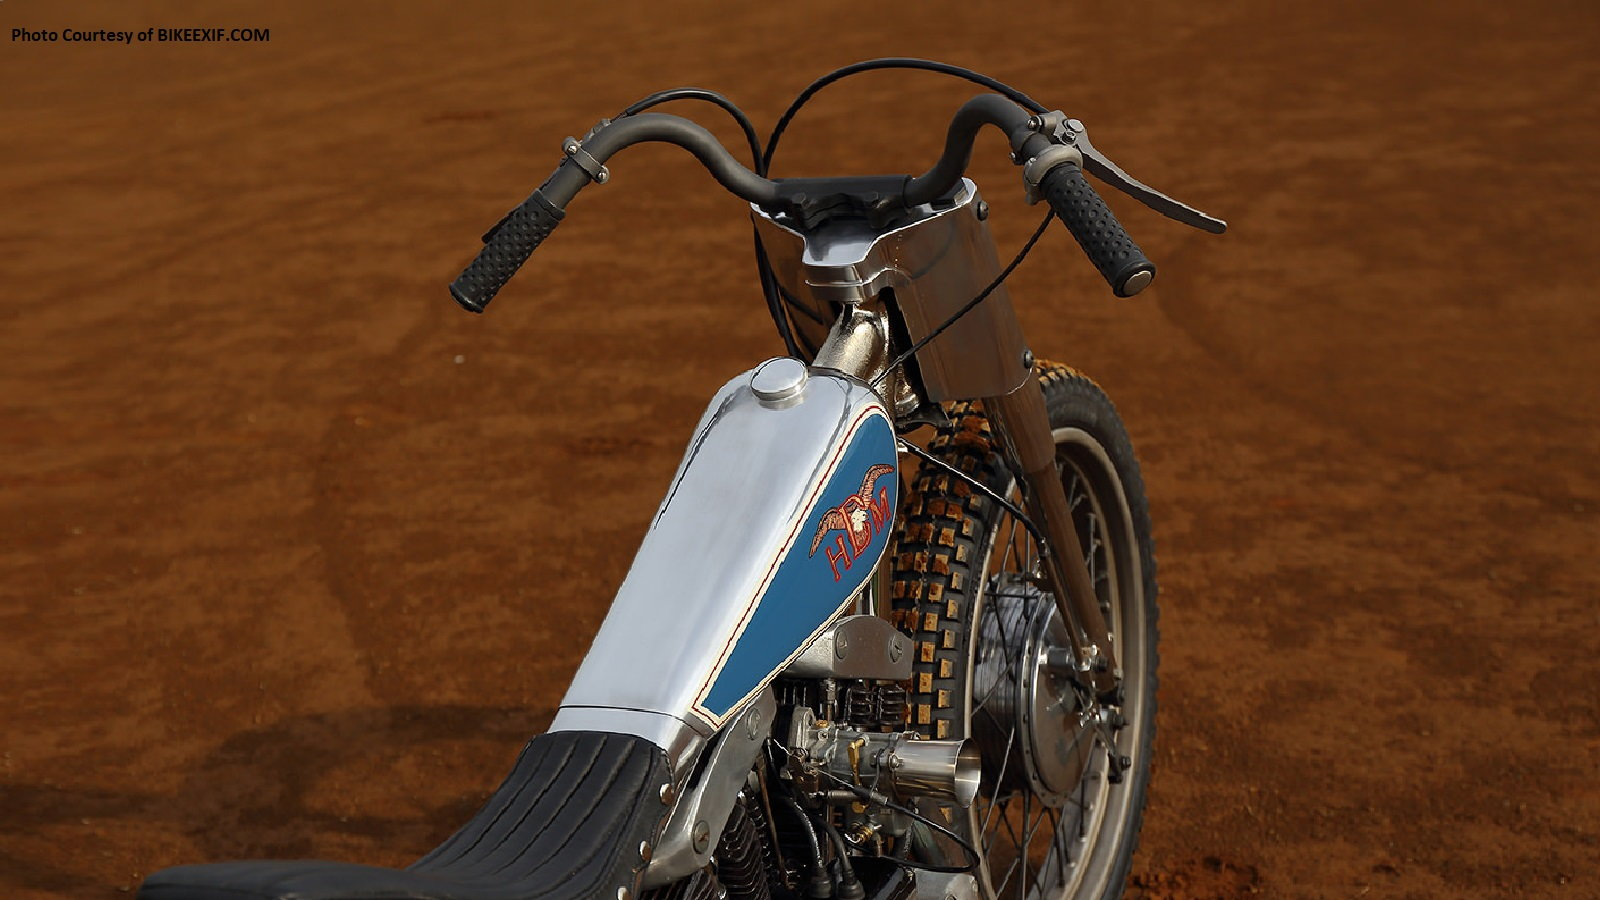 Hide Motorcycle's 1966 XLCH Sportster